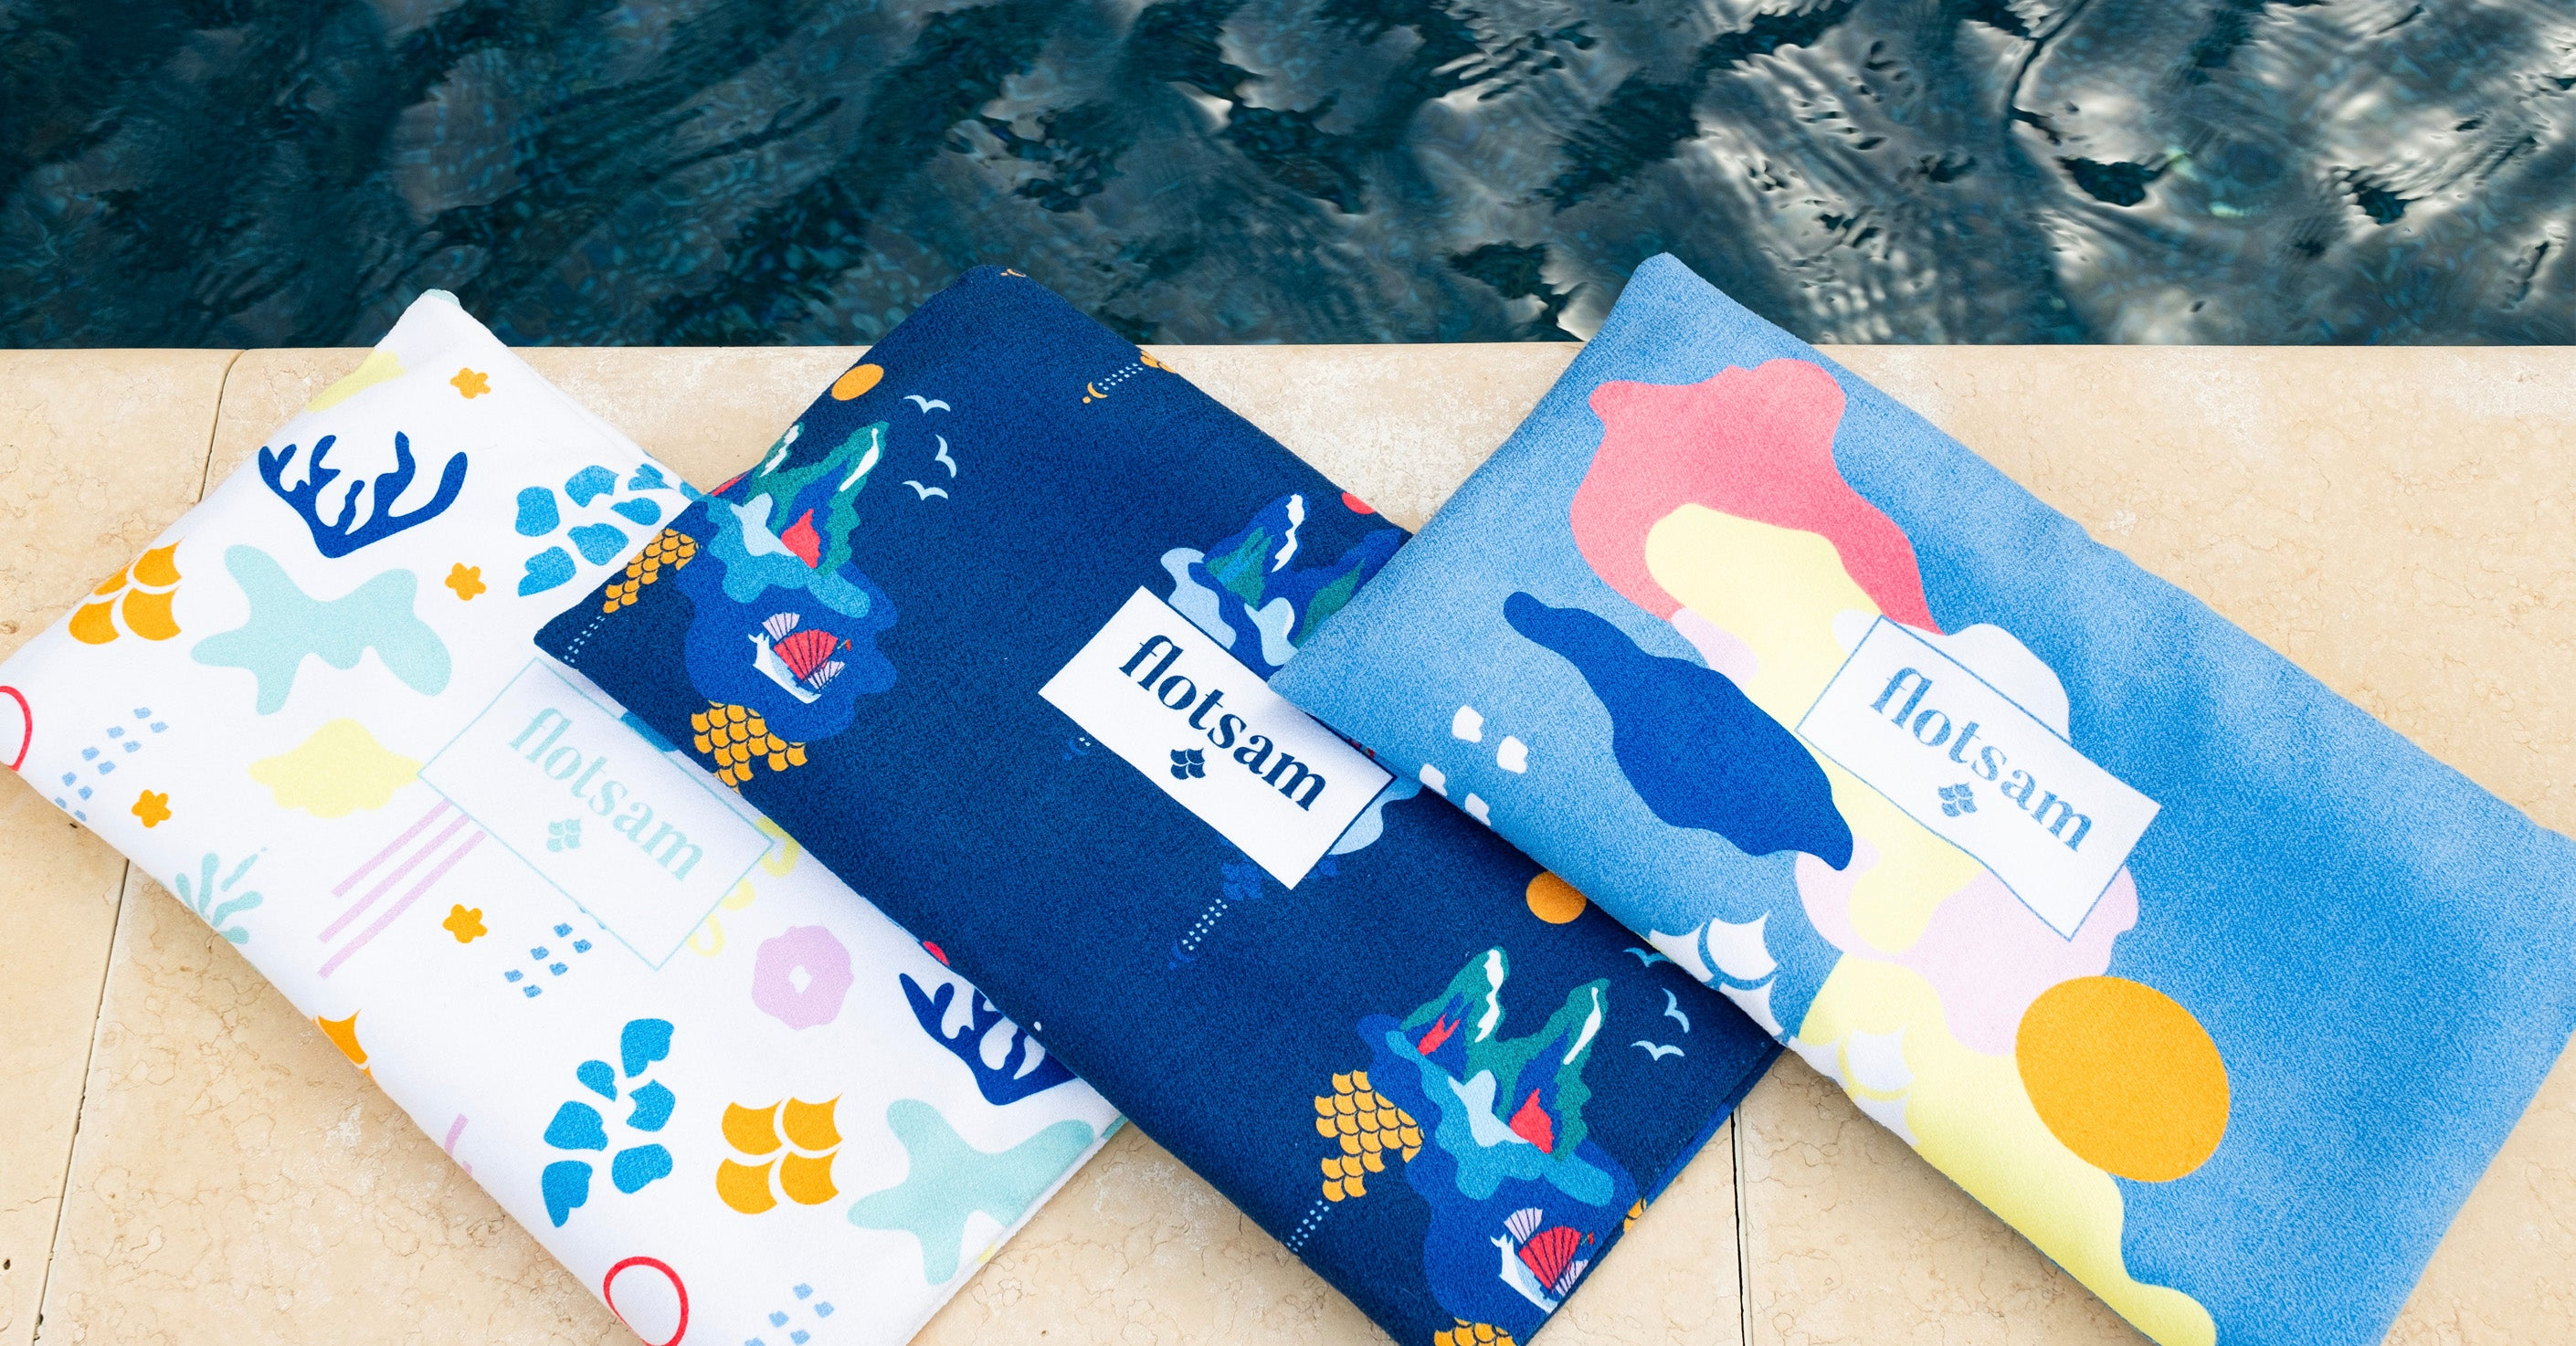 Three microfibre beach towel designs with pillow cases